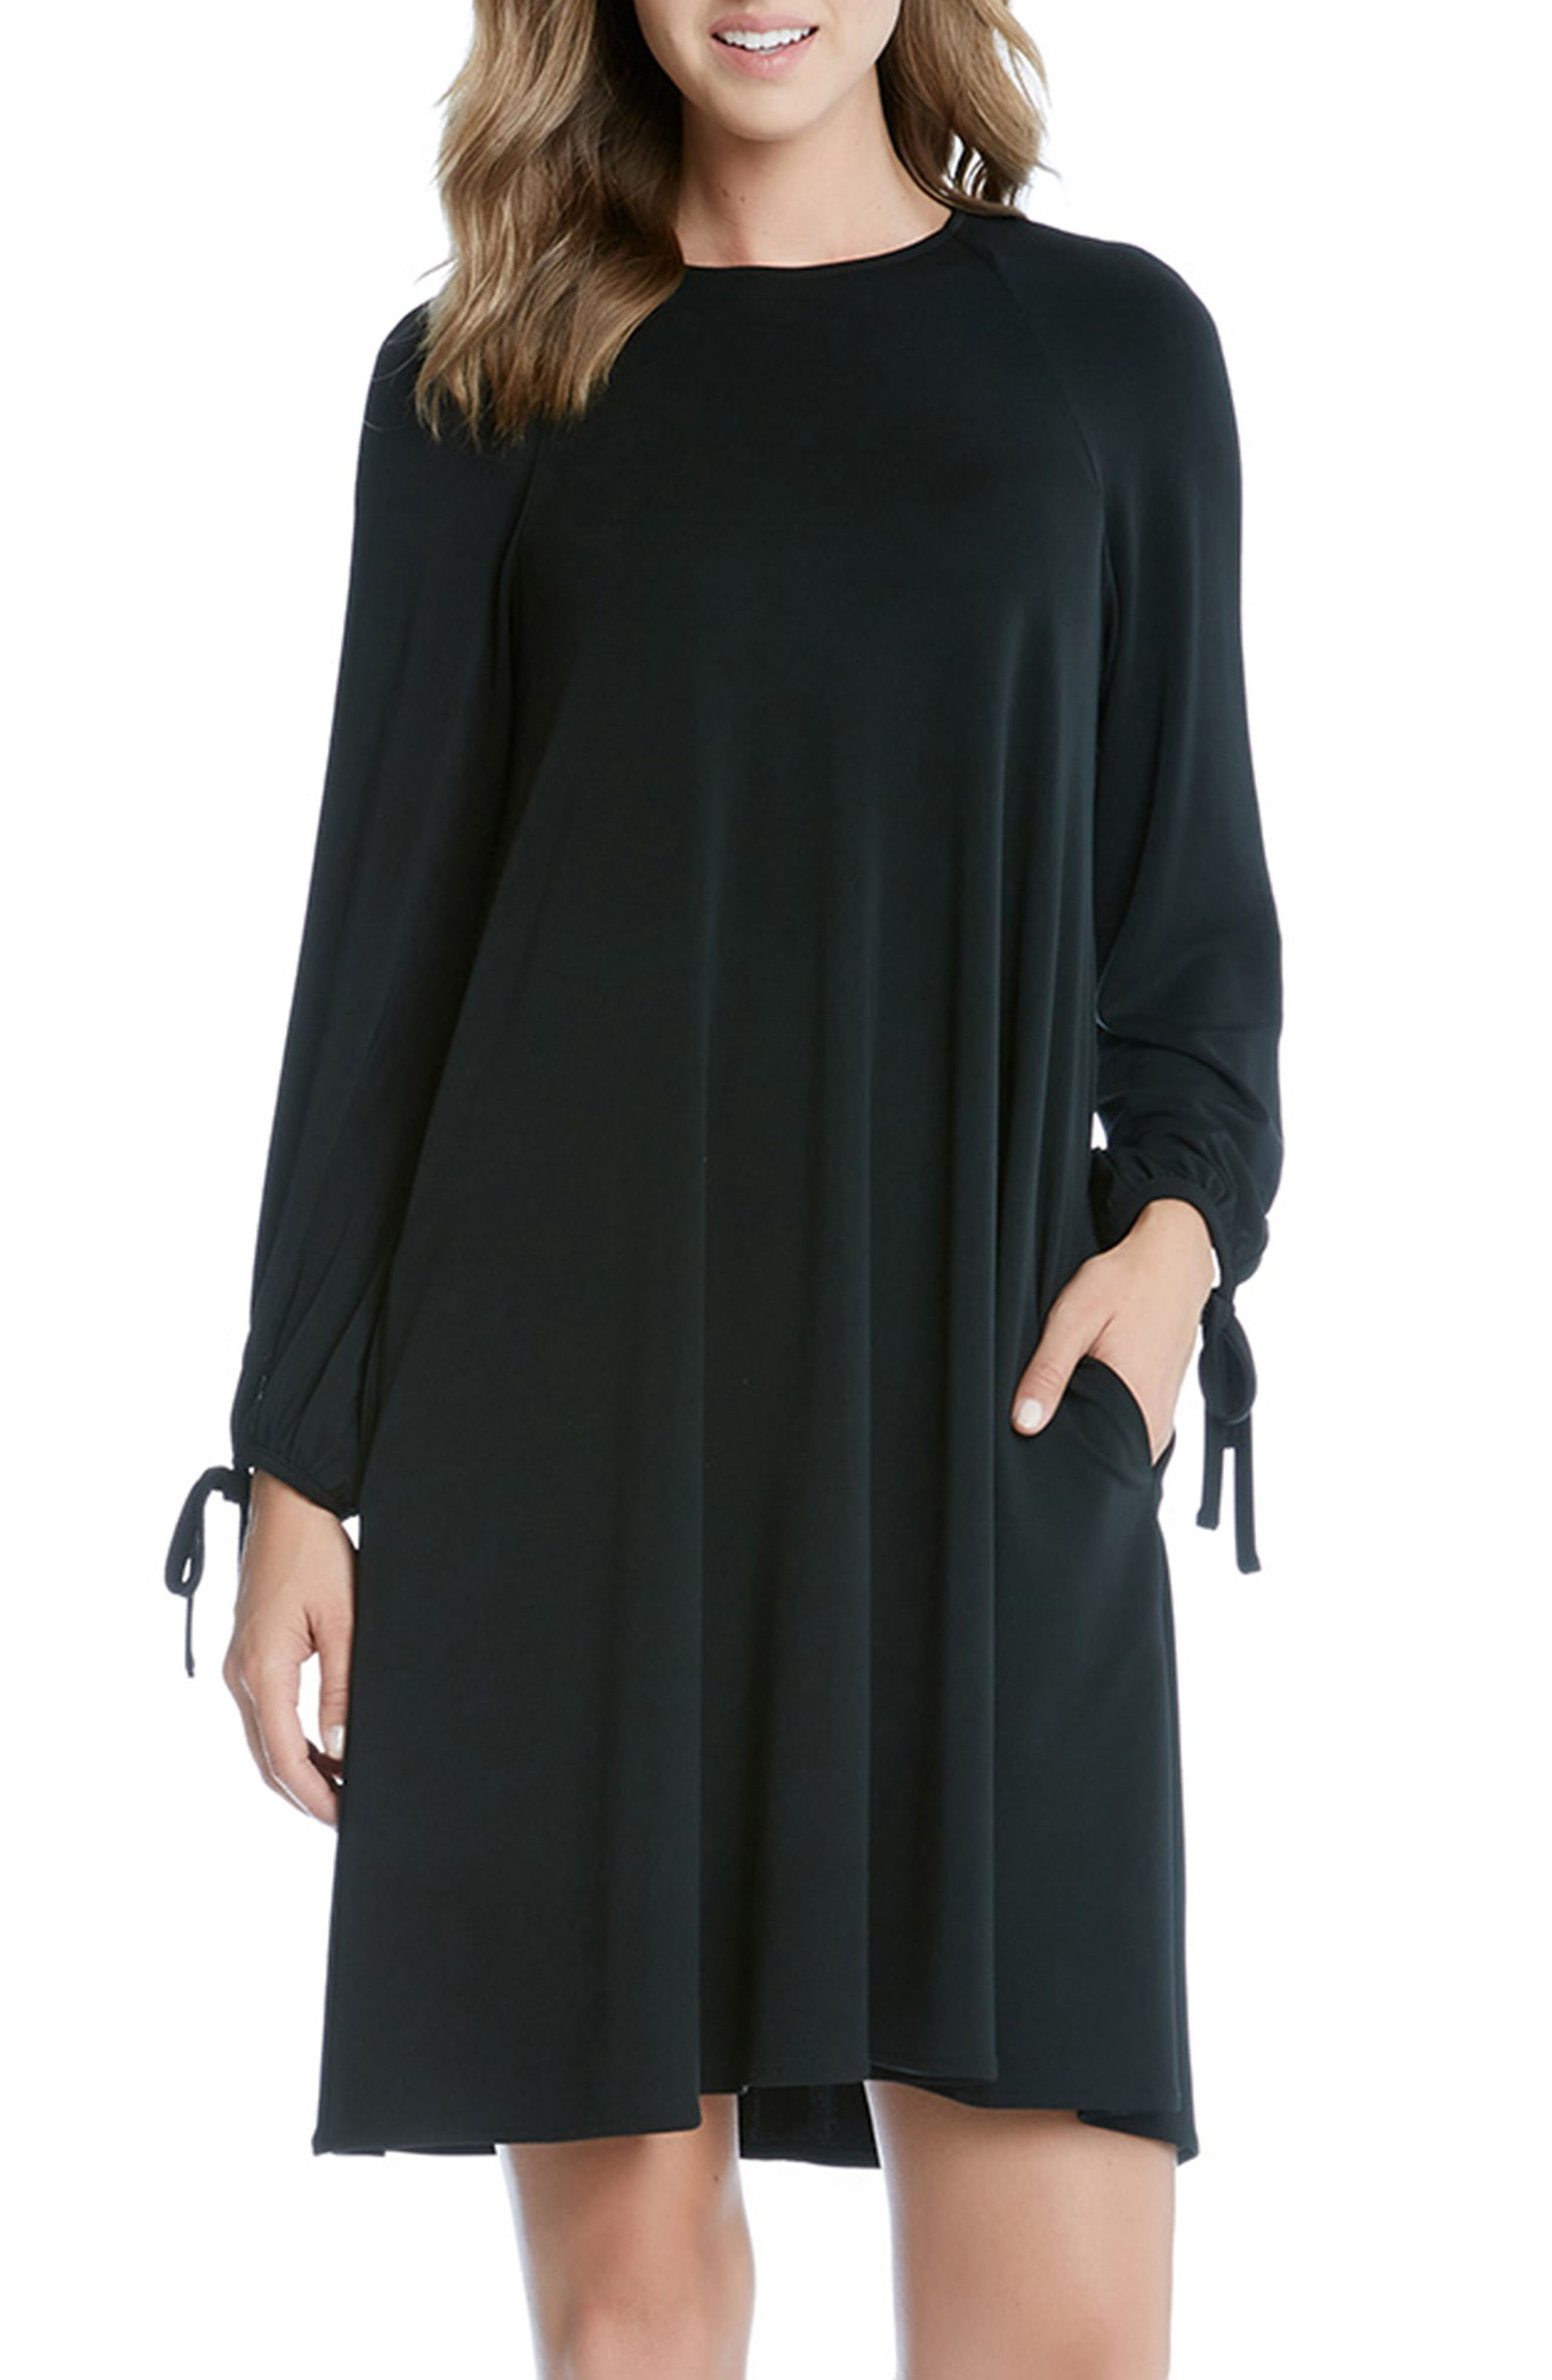 Tie Sleeve Swing Dress,                             Main thumbnail 1, color,                             Black